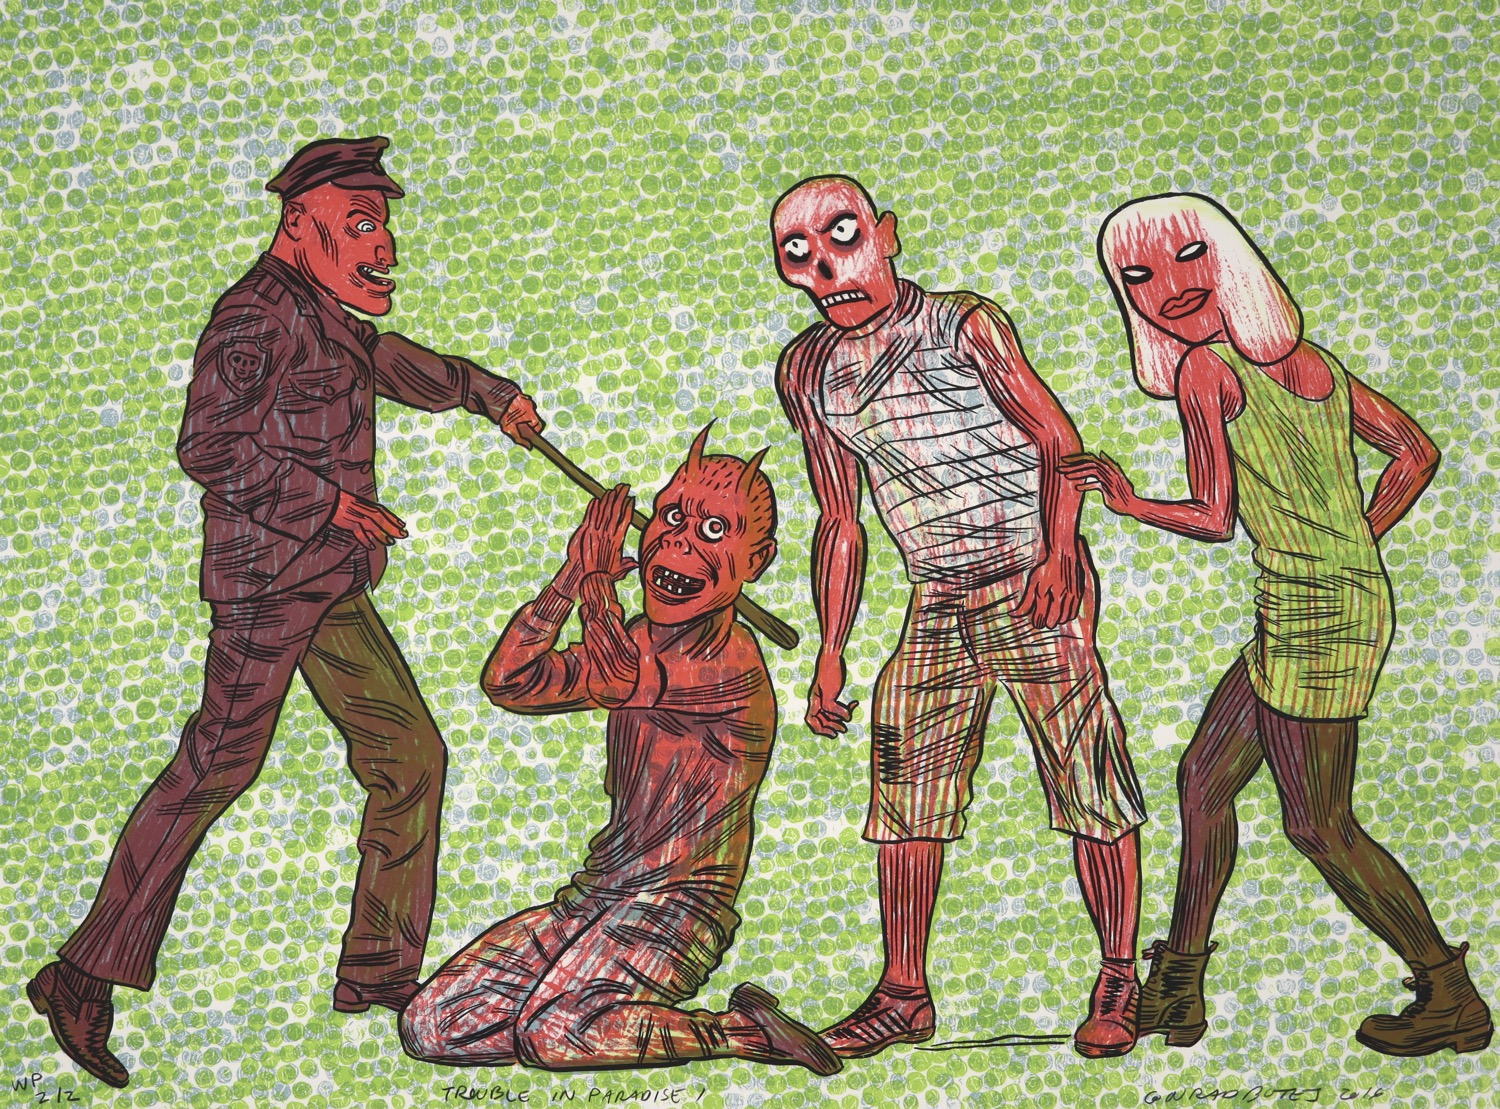 Four zombie comic style human figures on a green dotted background.